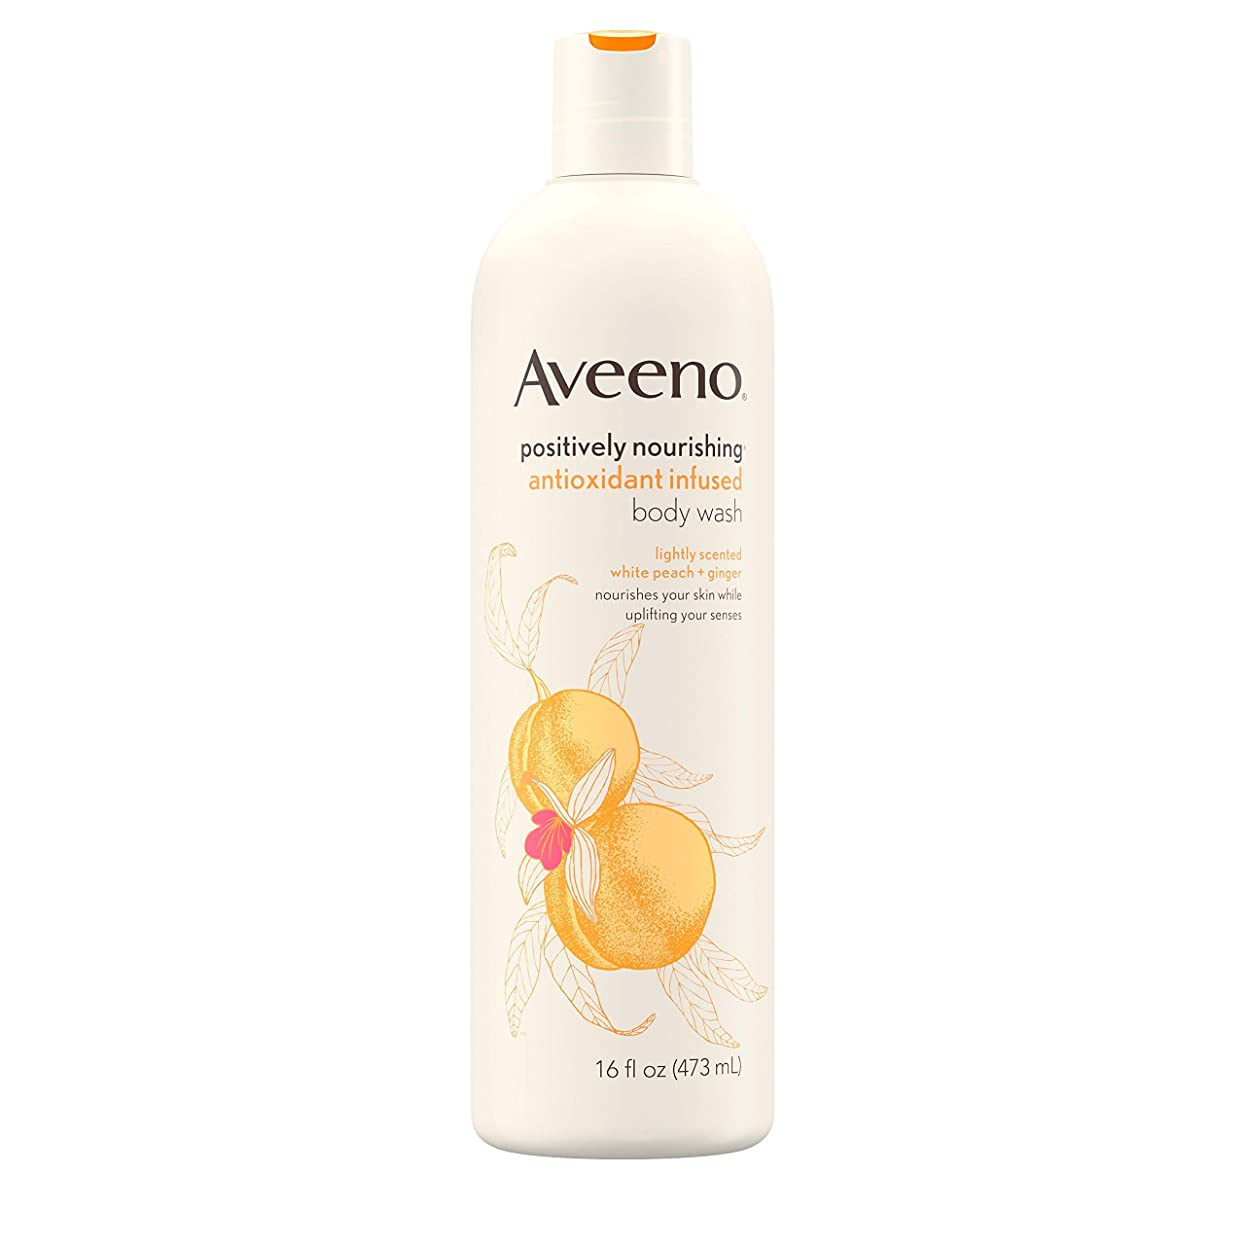 突破口衝突恐ろしいAveeno Positively Nourishing Antioxidant Infused Body Wash, 16 Oz by Aveeno